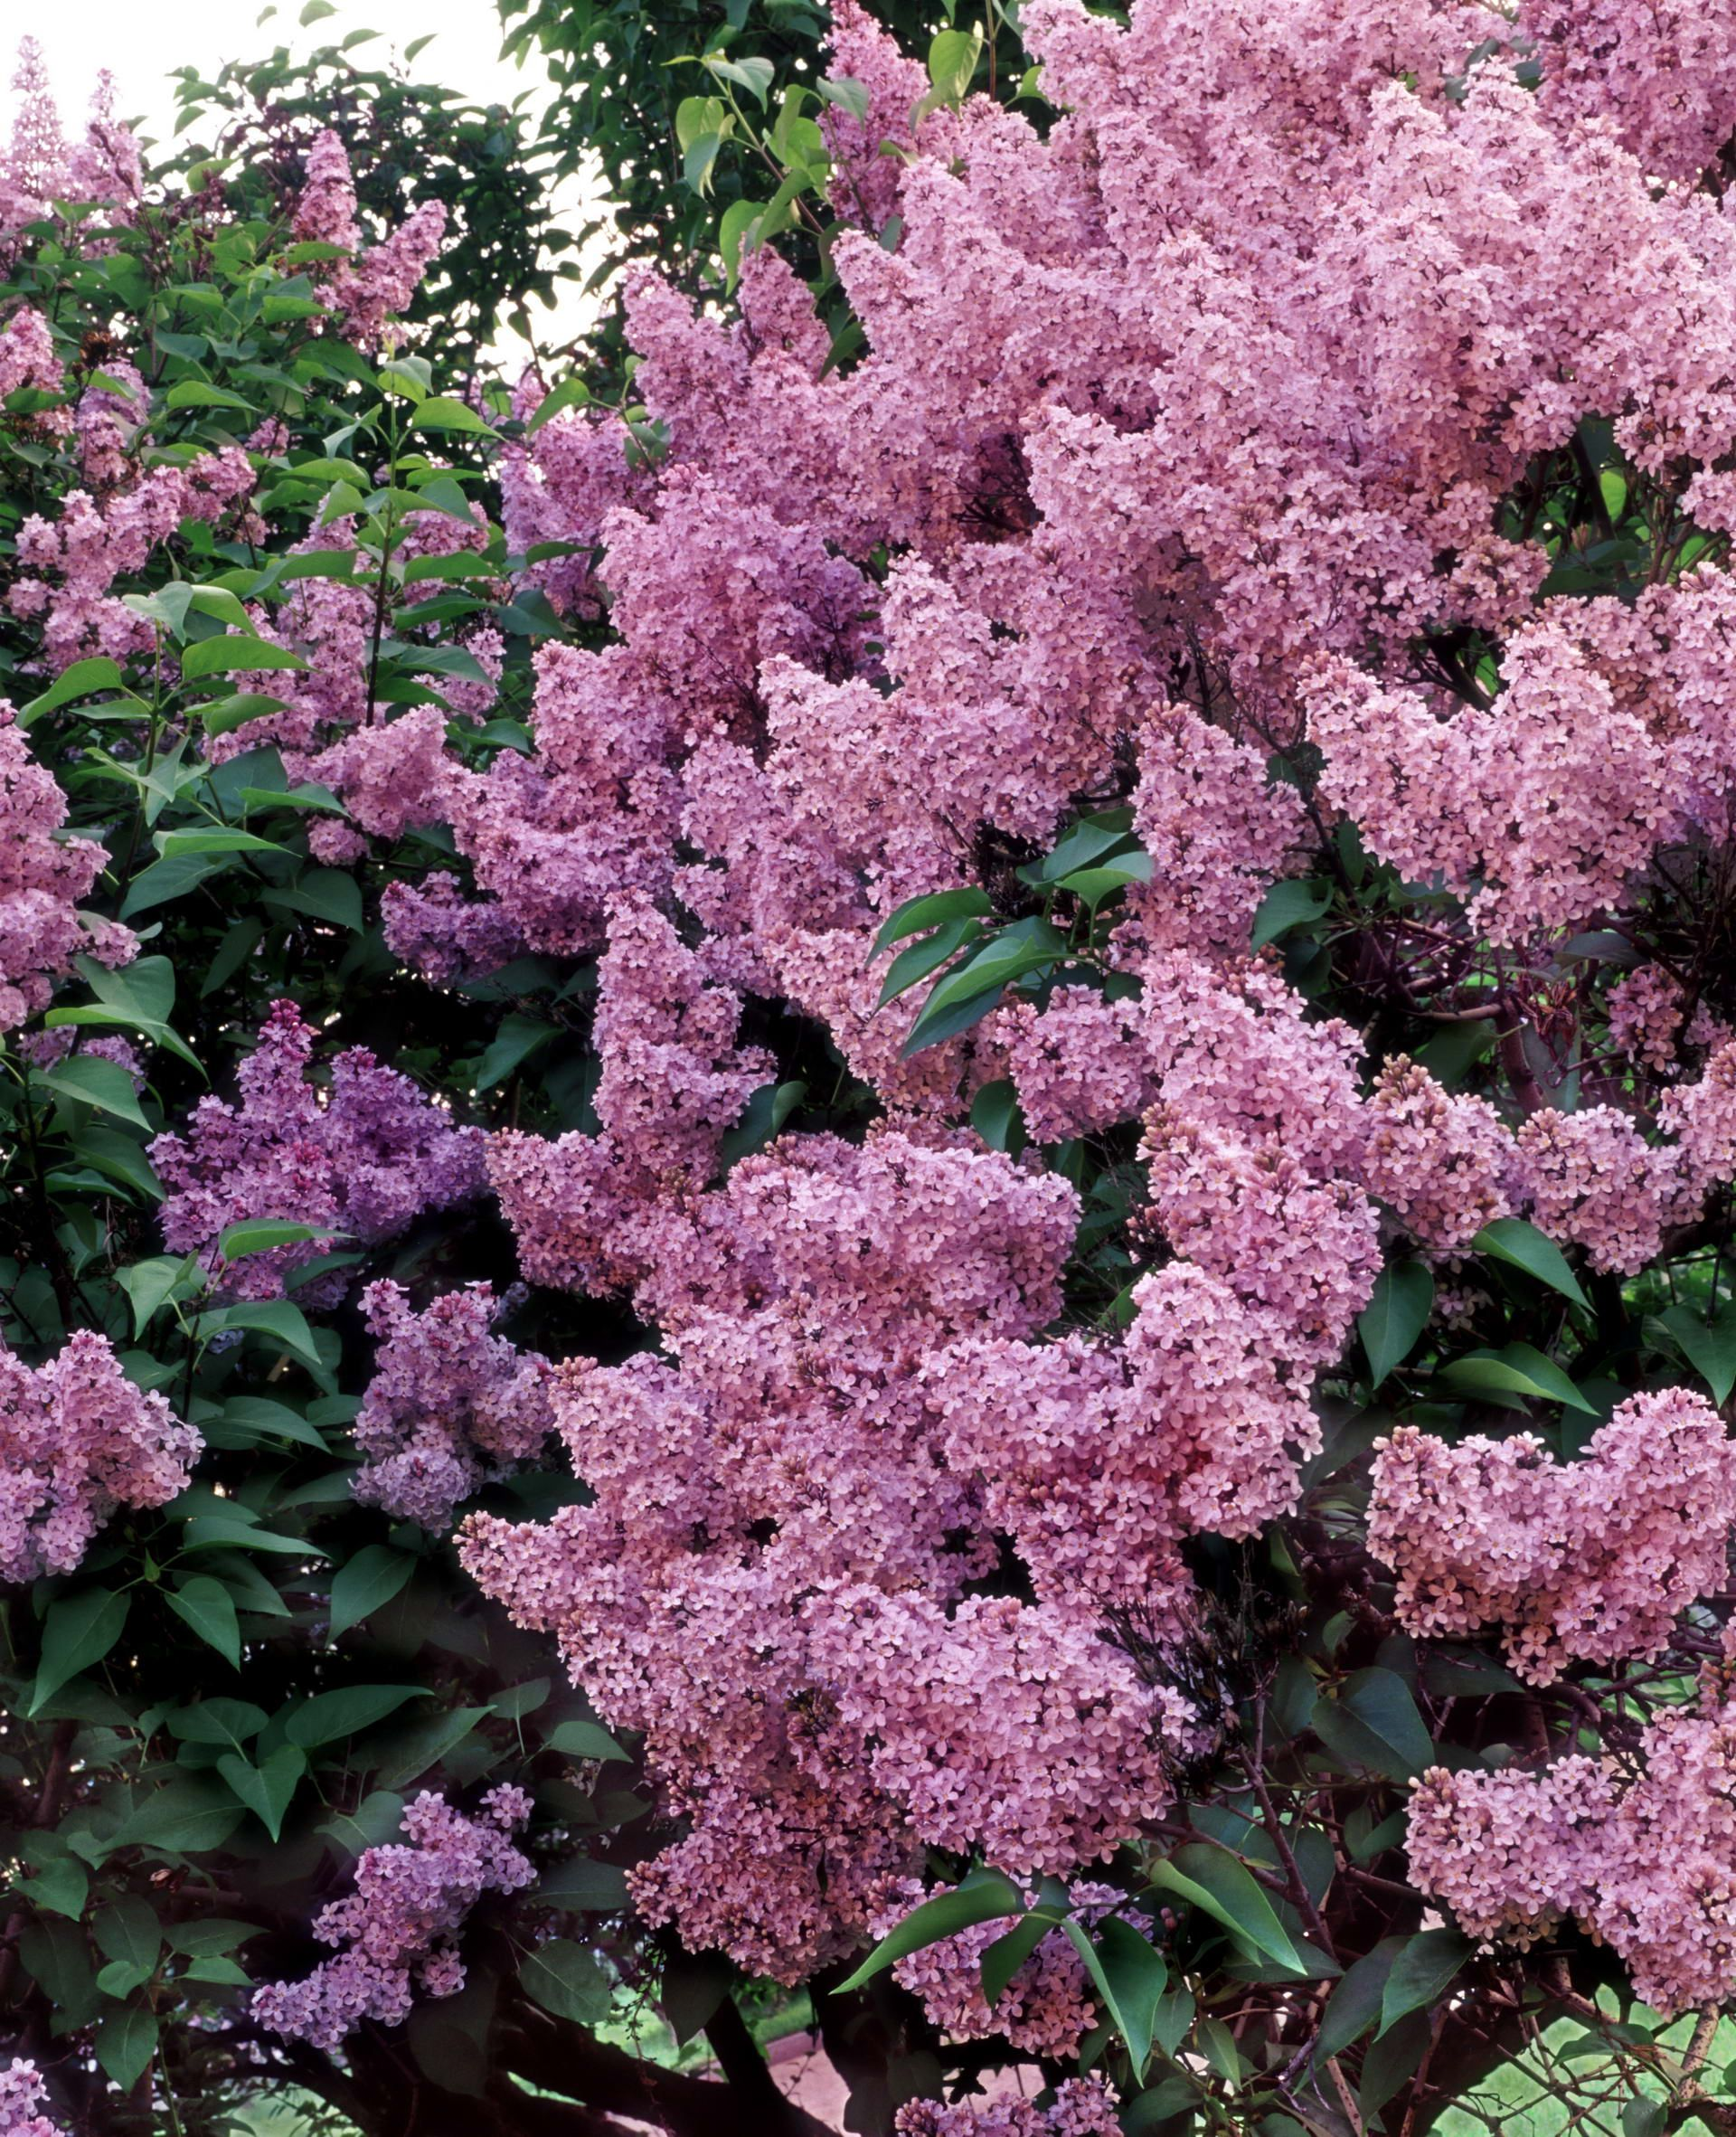 Miss Canada Lilac Has Large Clusters Of Tubular Deep Pink Flowers In Early Spring Description From Pinterest Com Lilac Tree Beautiful Flowers Lilac Flowers